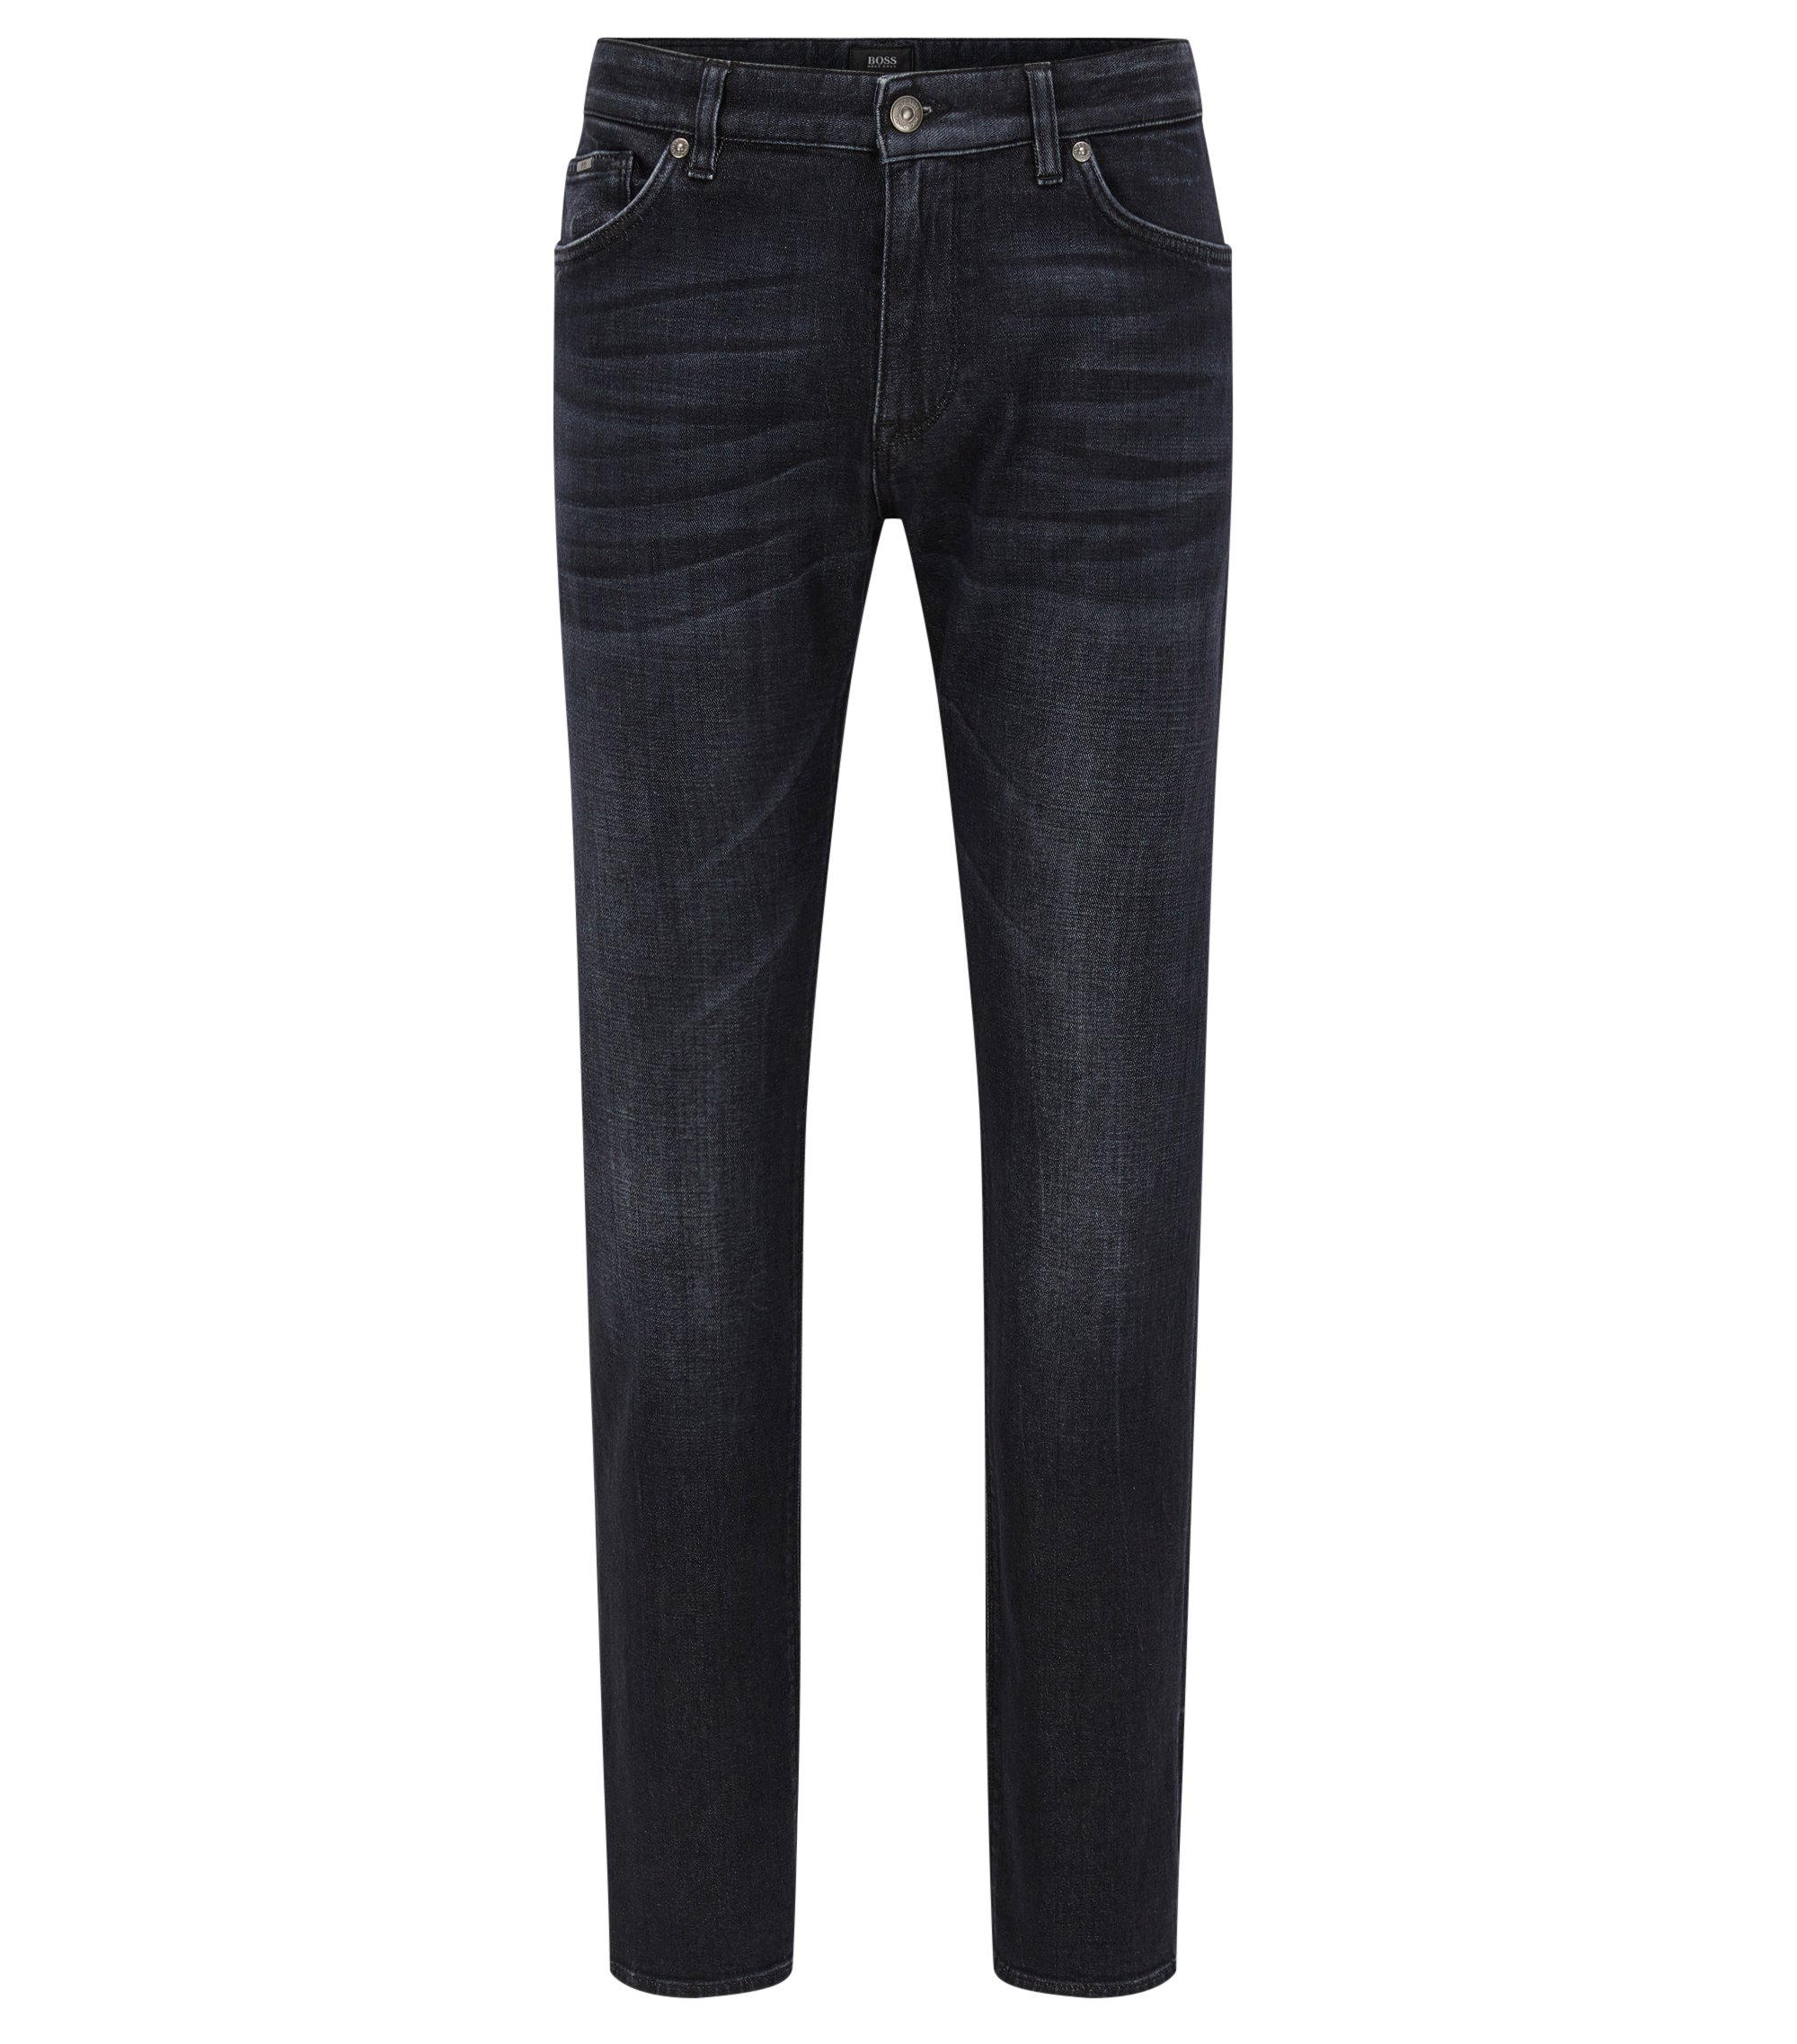 Jeans Regular Fit en denim noir au toucher cachemire, Anthracite